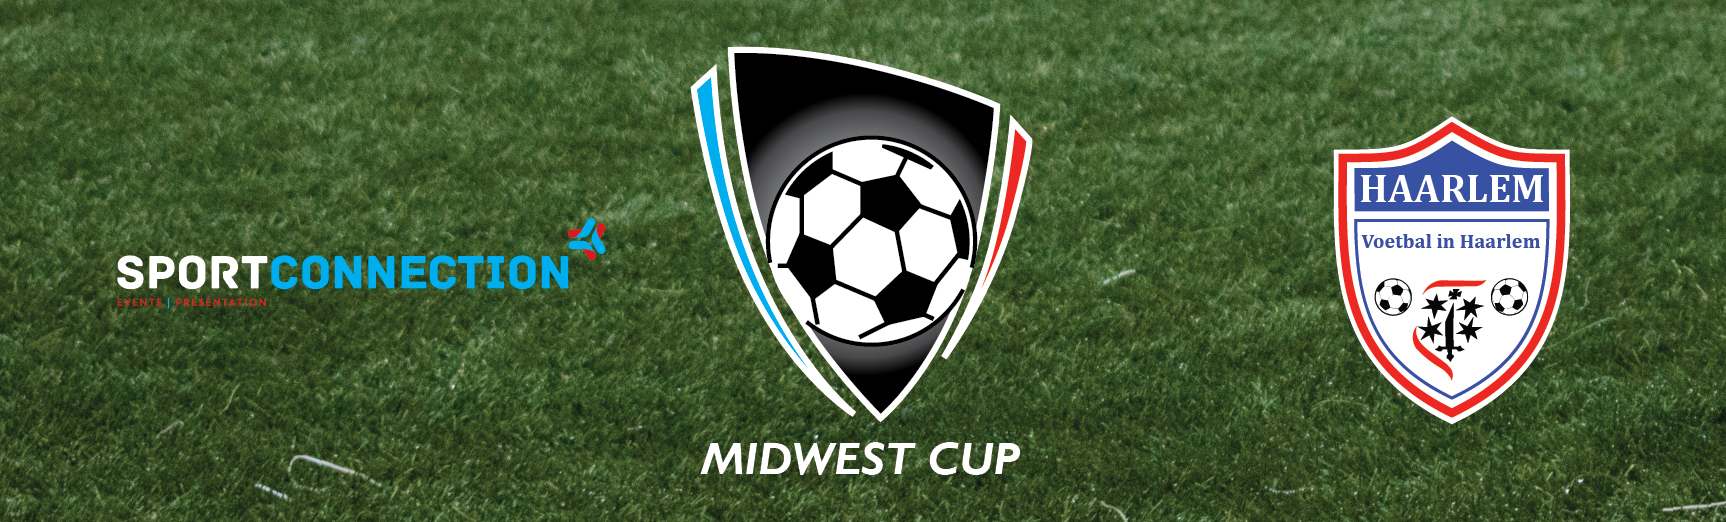 Header-Website-MidWest-Cup-Voetbal-in-Haarlem